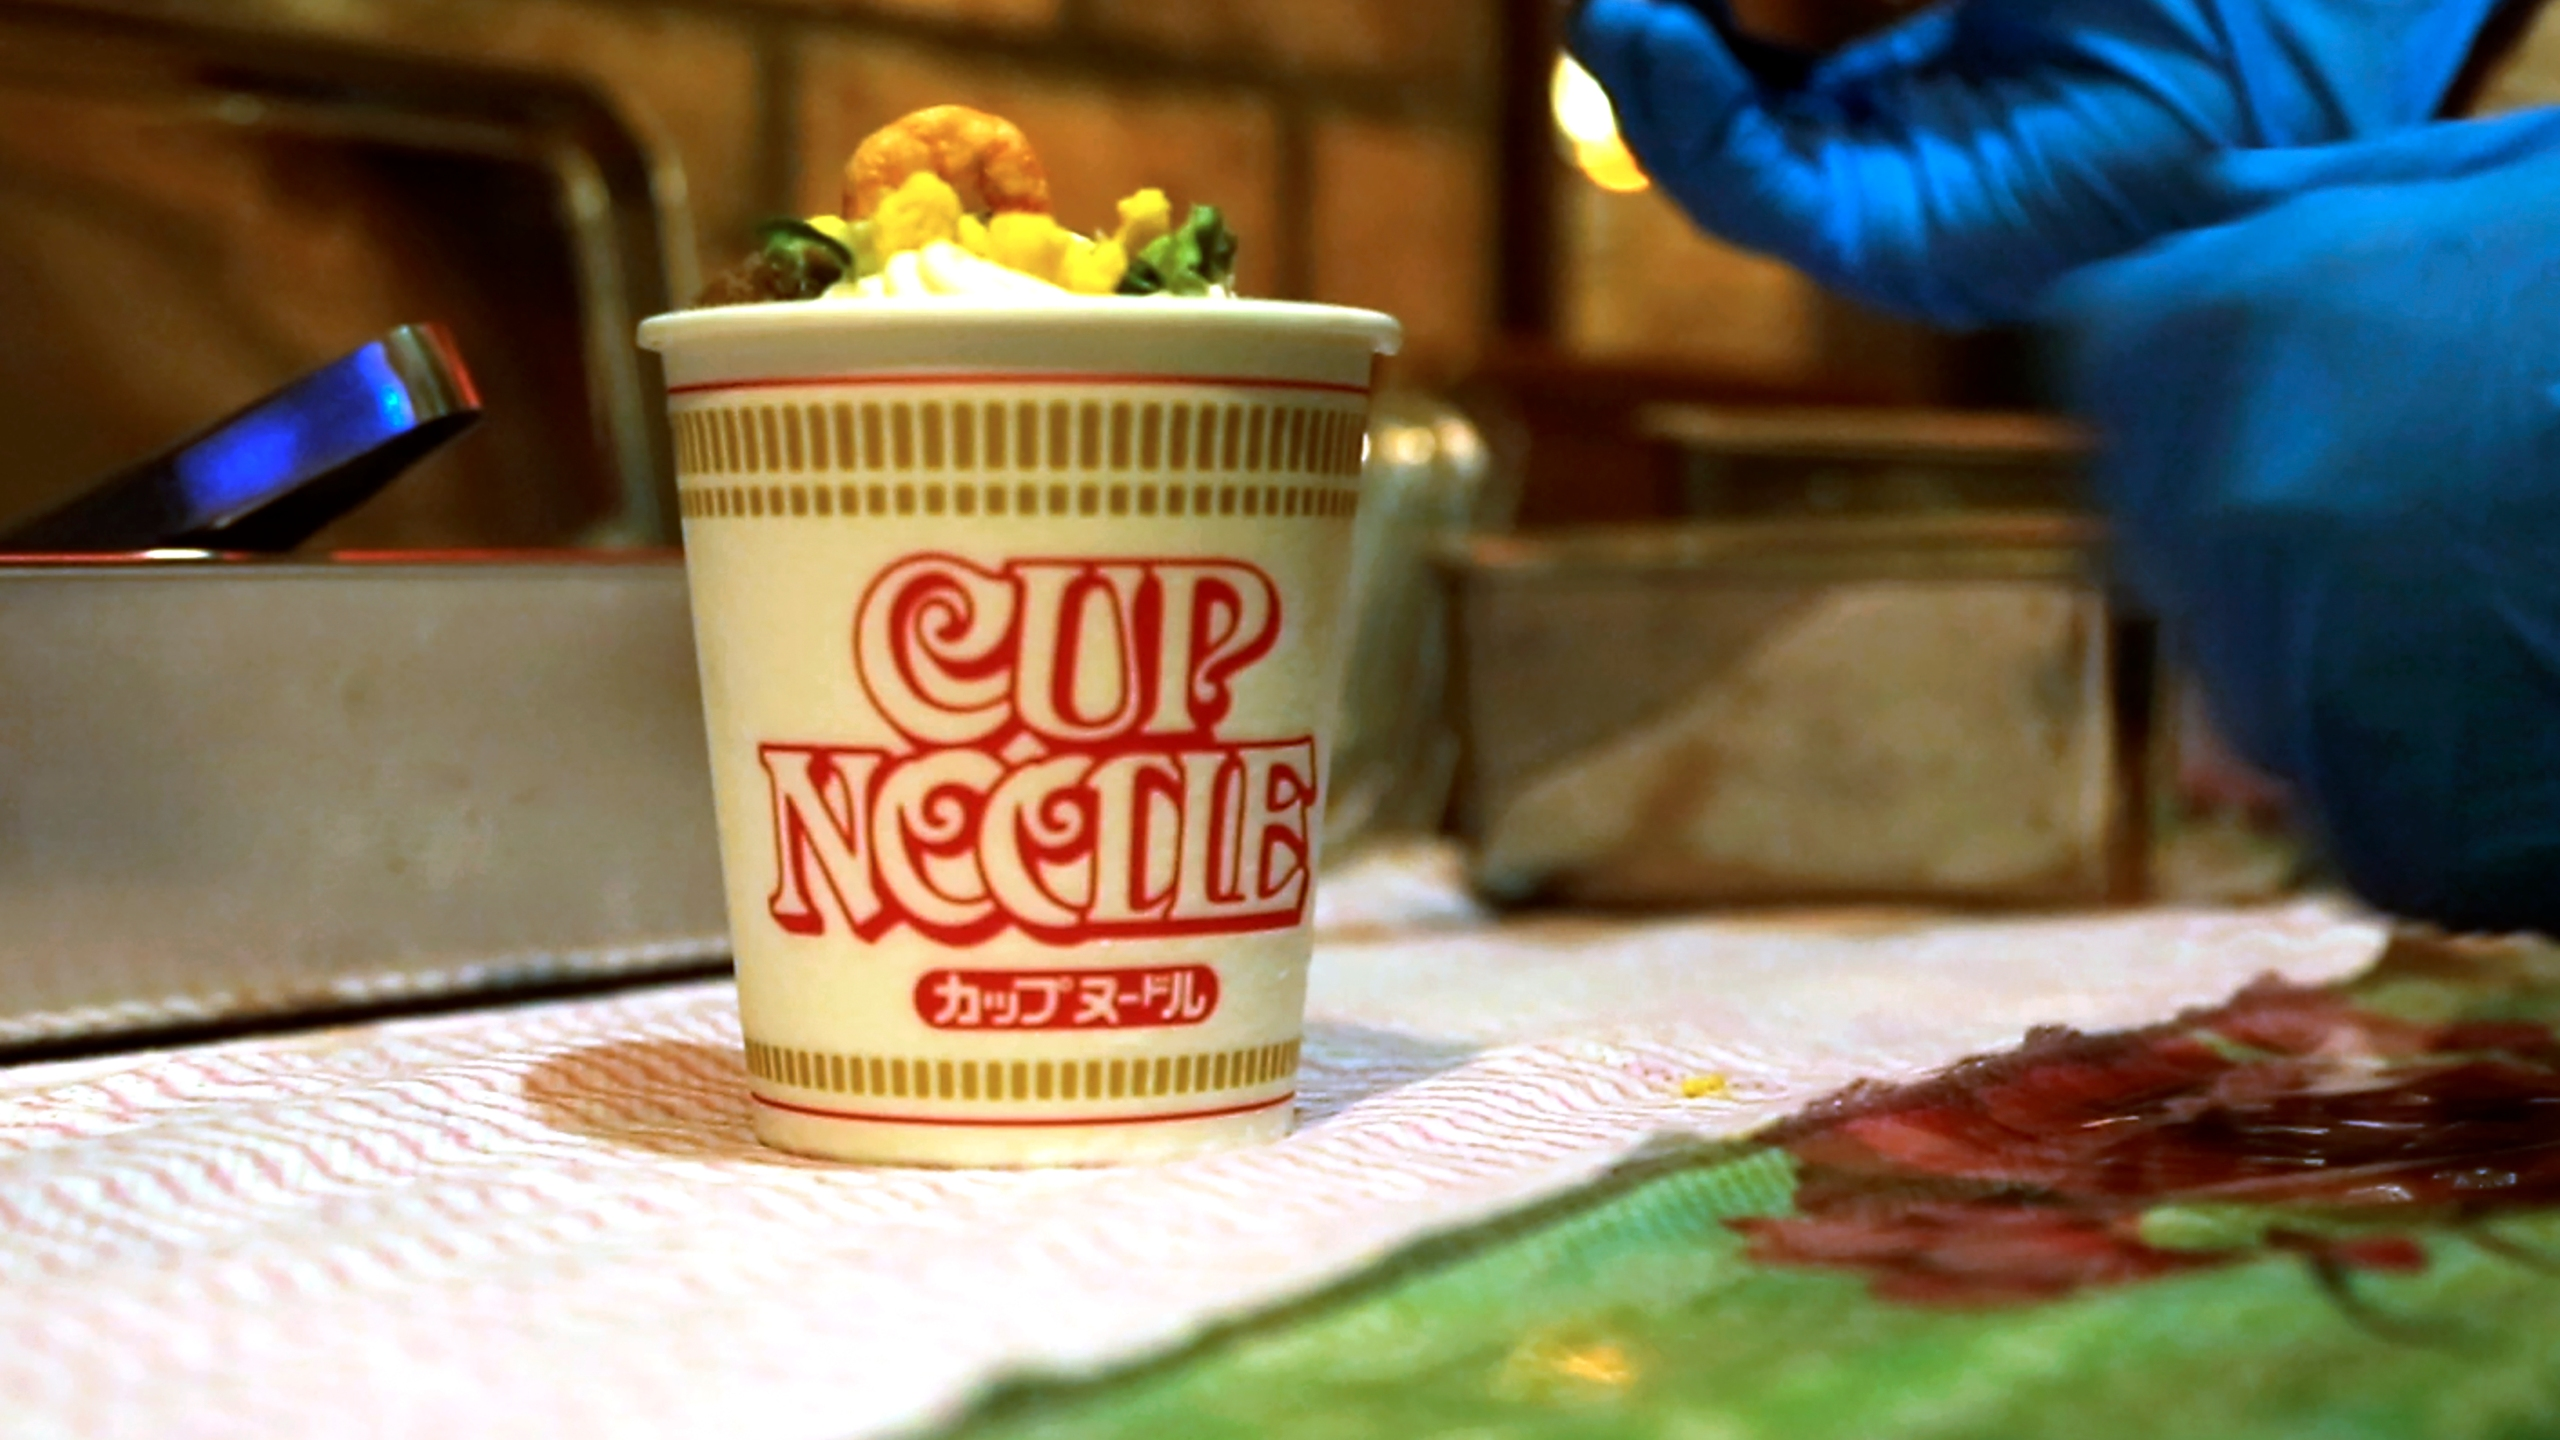 A Cup Noodle ice cream, made with the powdered soup of Cup Noodle and topped with freeze-fried shrimp, onions, egg and meat, is prepared to be eaten at the Cup Noodles Museum in Yokohama, Japan, on Friday, Aug. 6, 2021. Sold only at the Yokohama museum, the ice cream embodies a spirit of adventure in Japanese foods. (AP Photo/John Leicester)